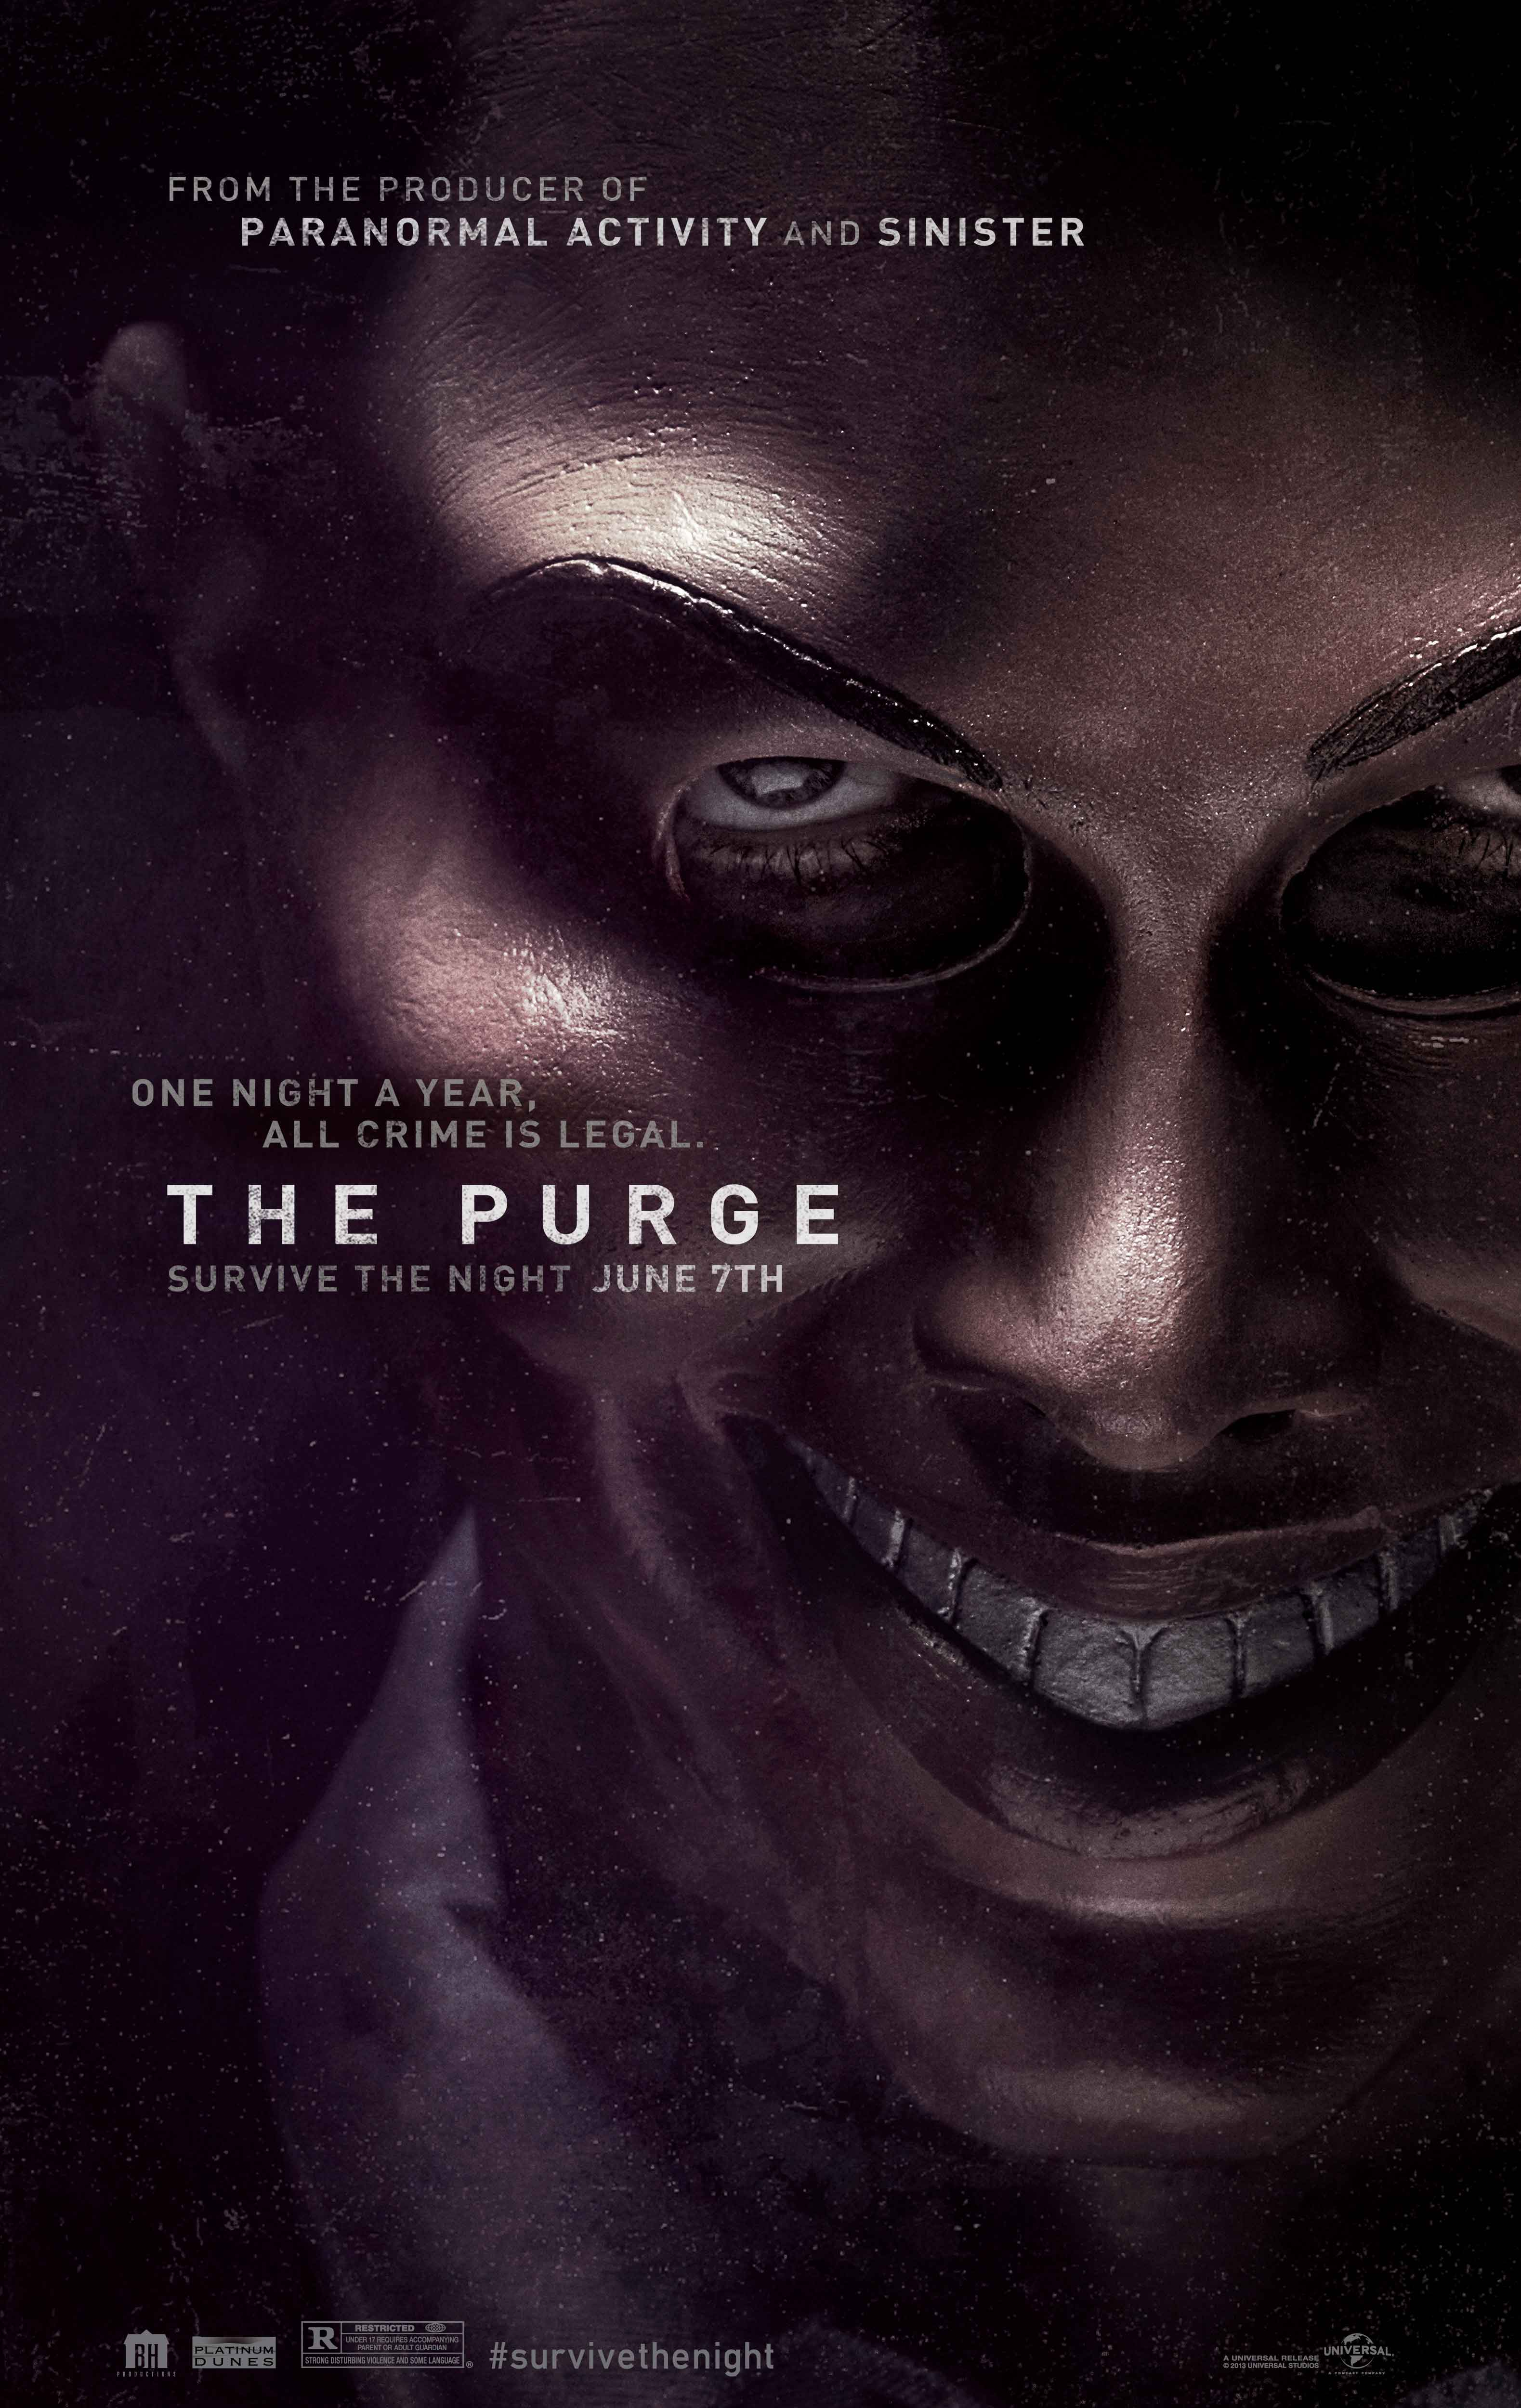 purge Cyberbullying and Digital Ghosts: The Horror of Unfriended